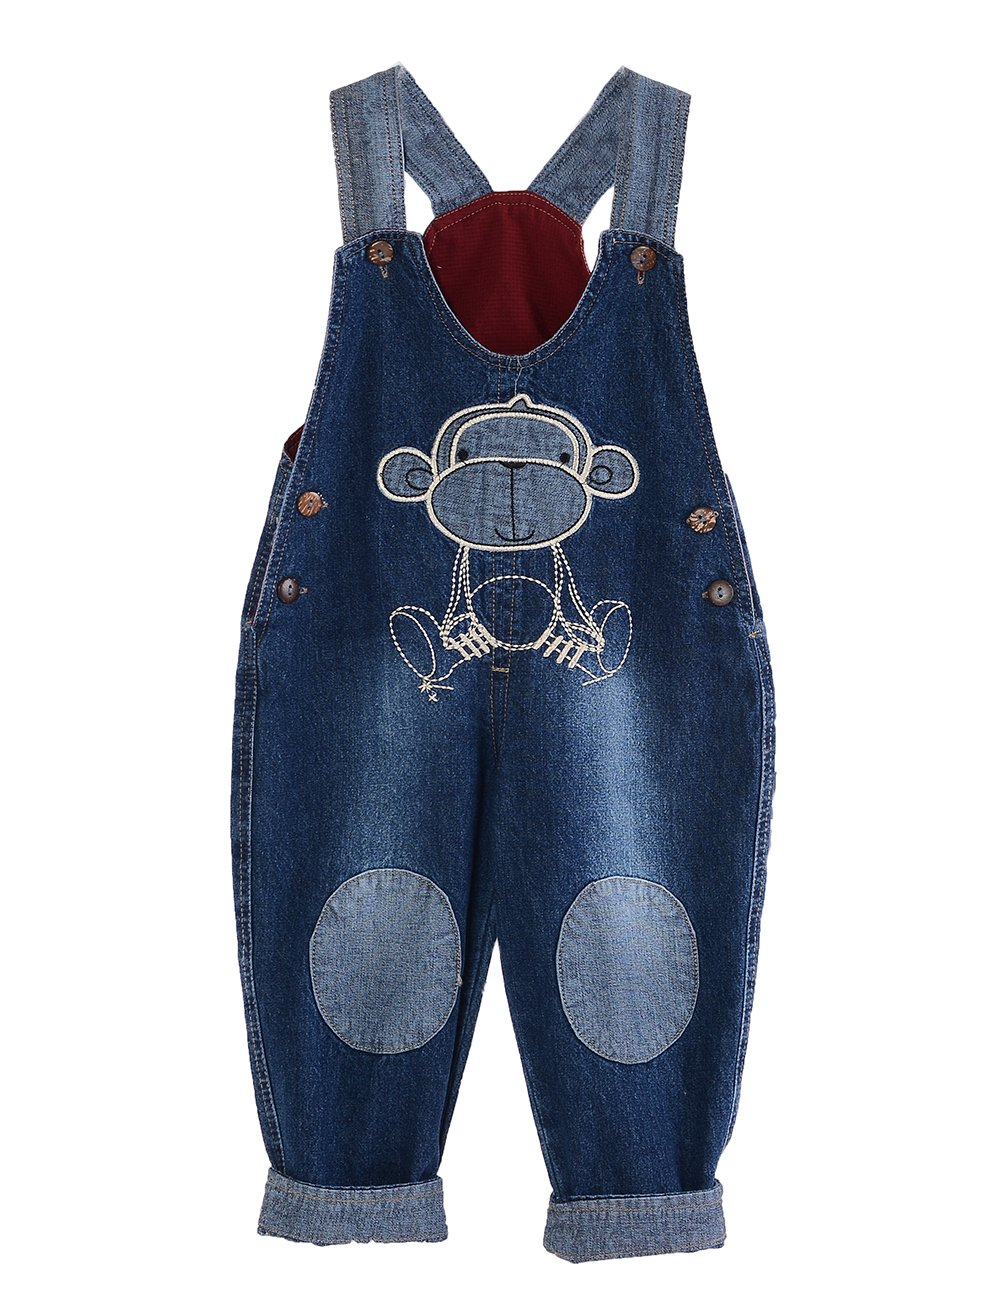 MG Kids Unisex Baby Roll Up Jumpsuit Dungarees Tractor Cartoon Boys Girls Jumpsuit Denim Toddler Jeans